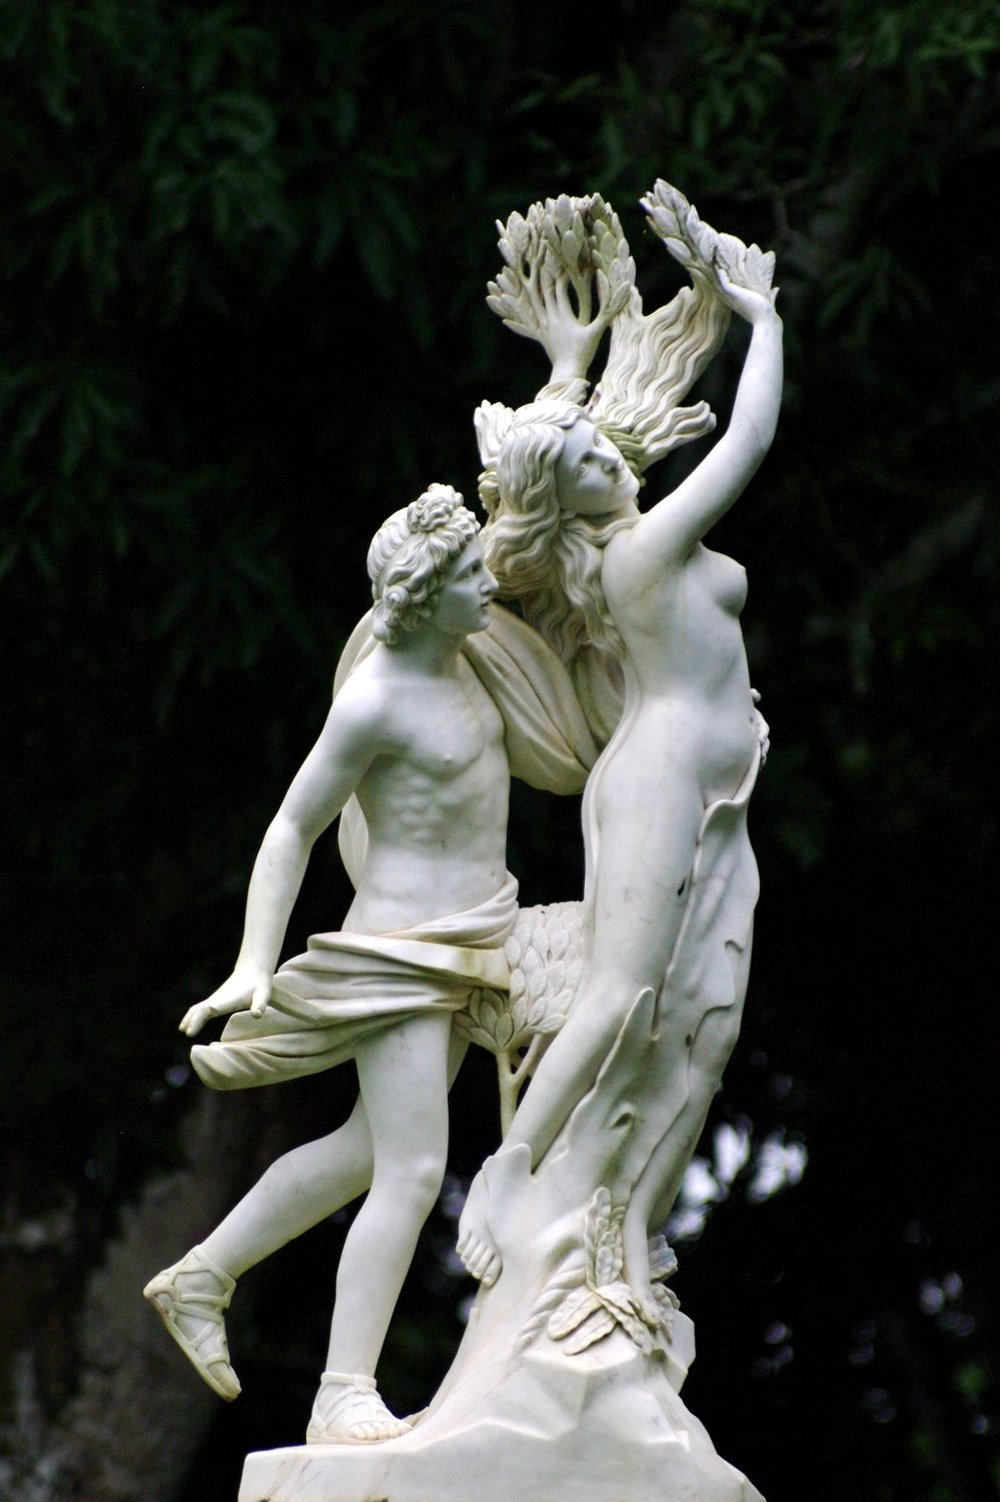 Apollo and Daphne by Bernini - photo credit: Guilherme Jofili